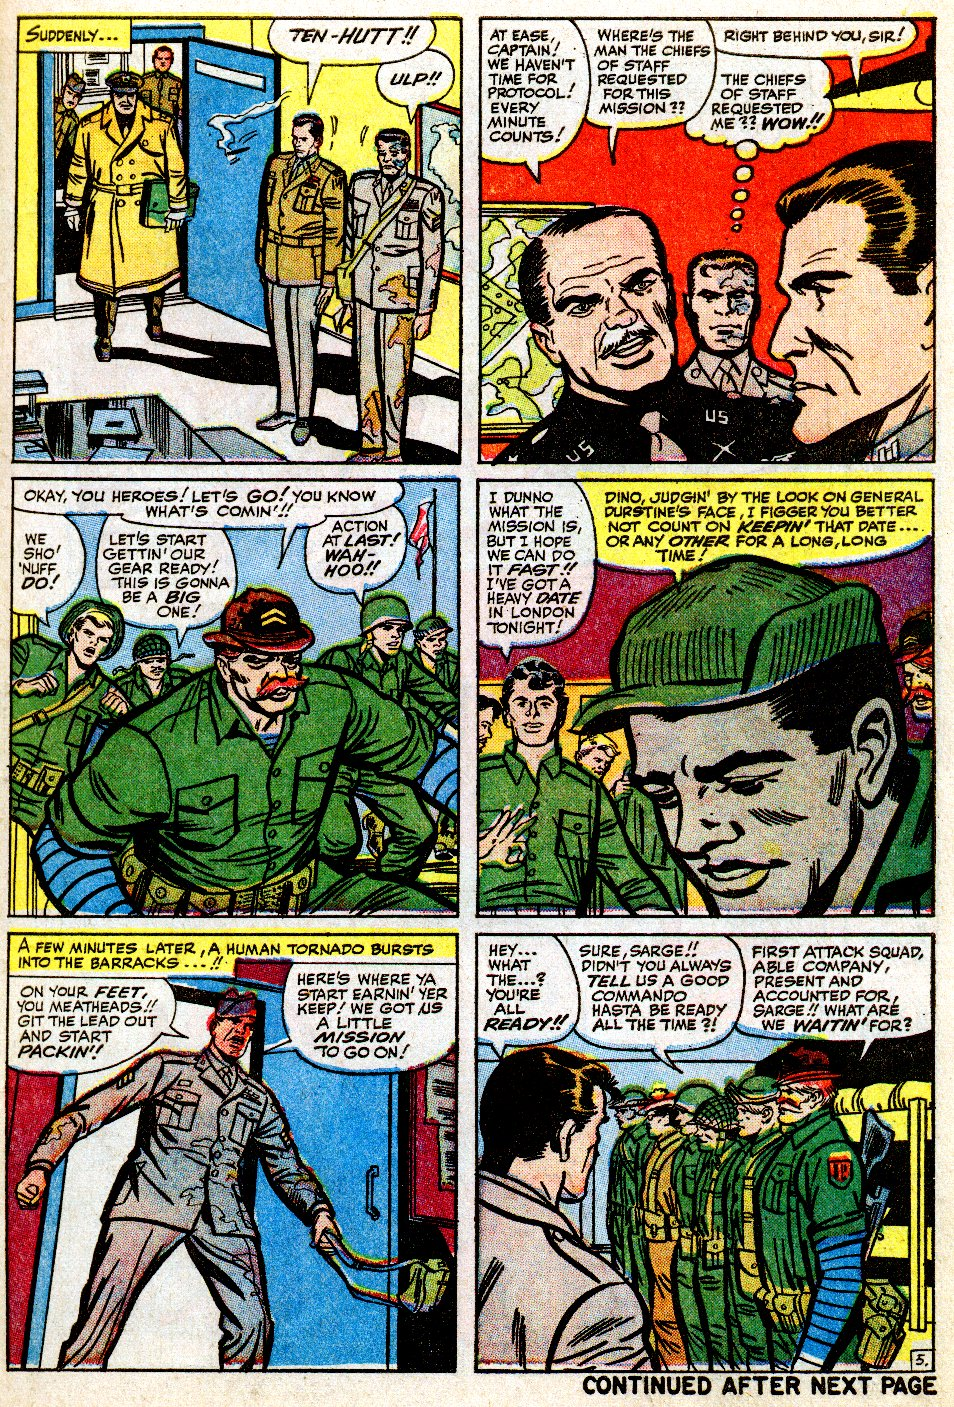 Read online Sgt. Fury comic -  Issue #9 - 7